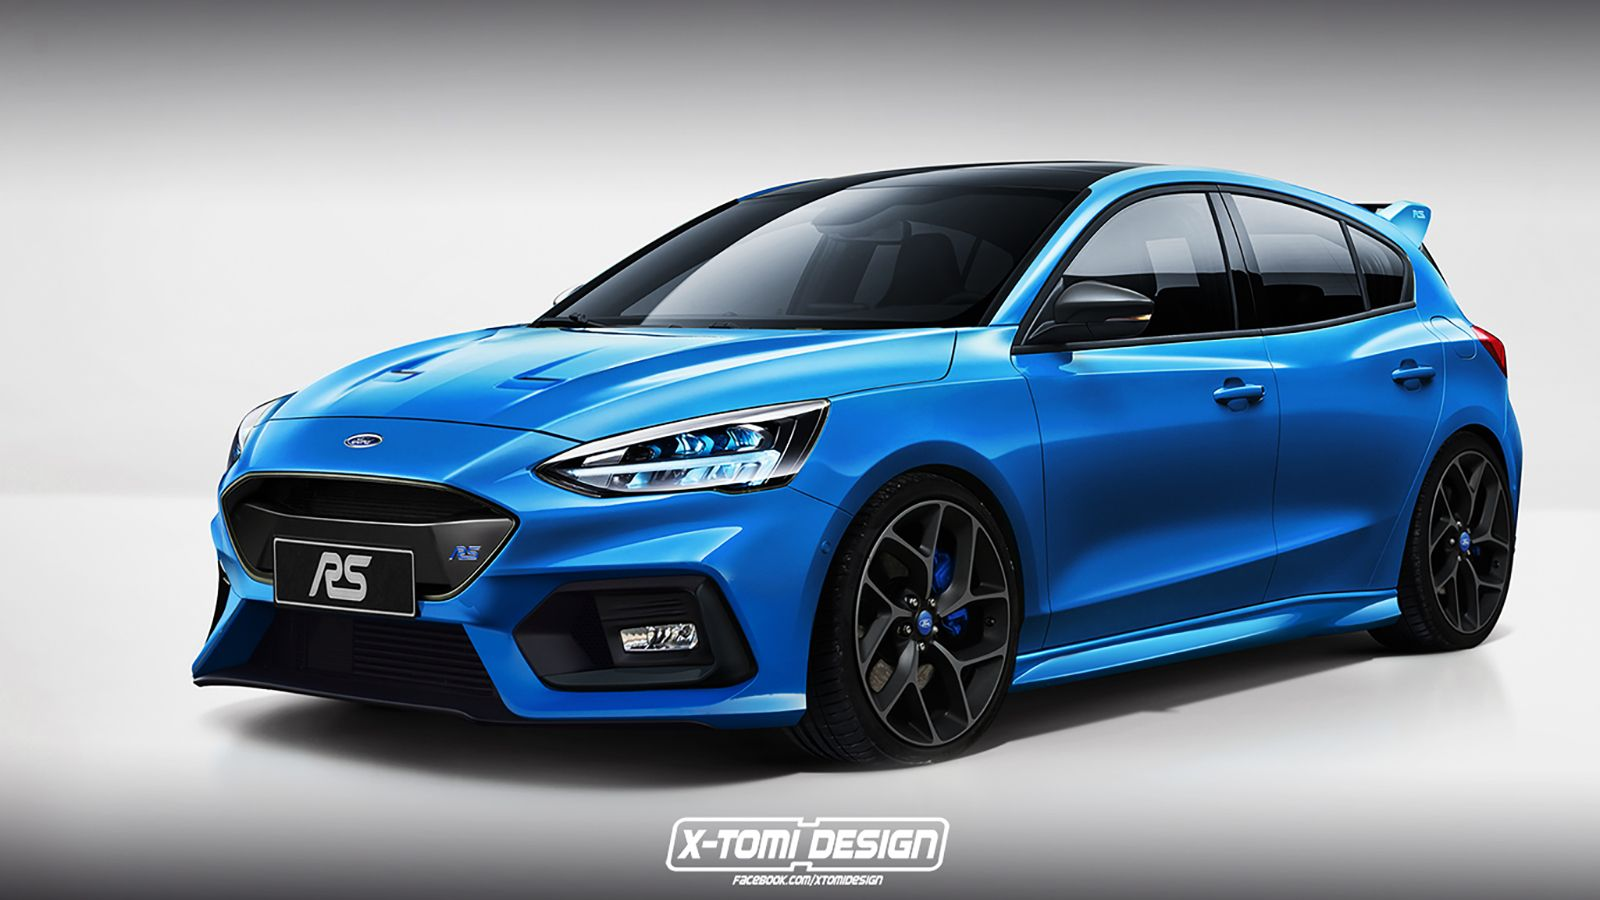 Here S A Preview Of What The Ford Focus St And Focus Rs Might Look Like Ford Focus Ford Focus Rs New Ford Focus